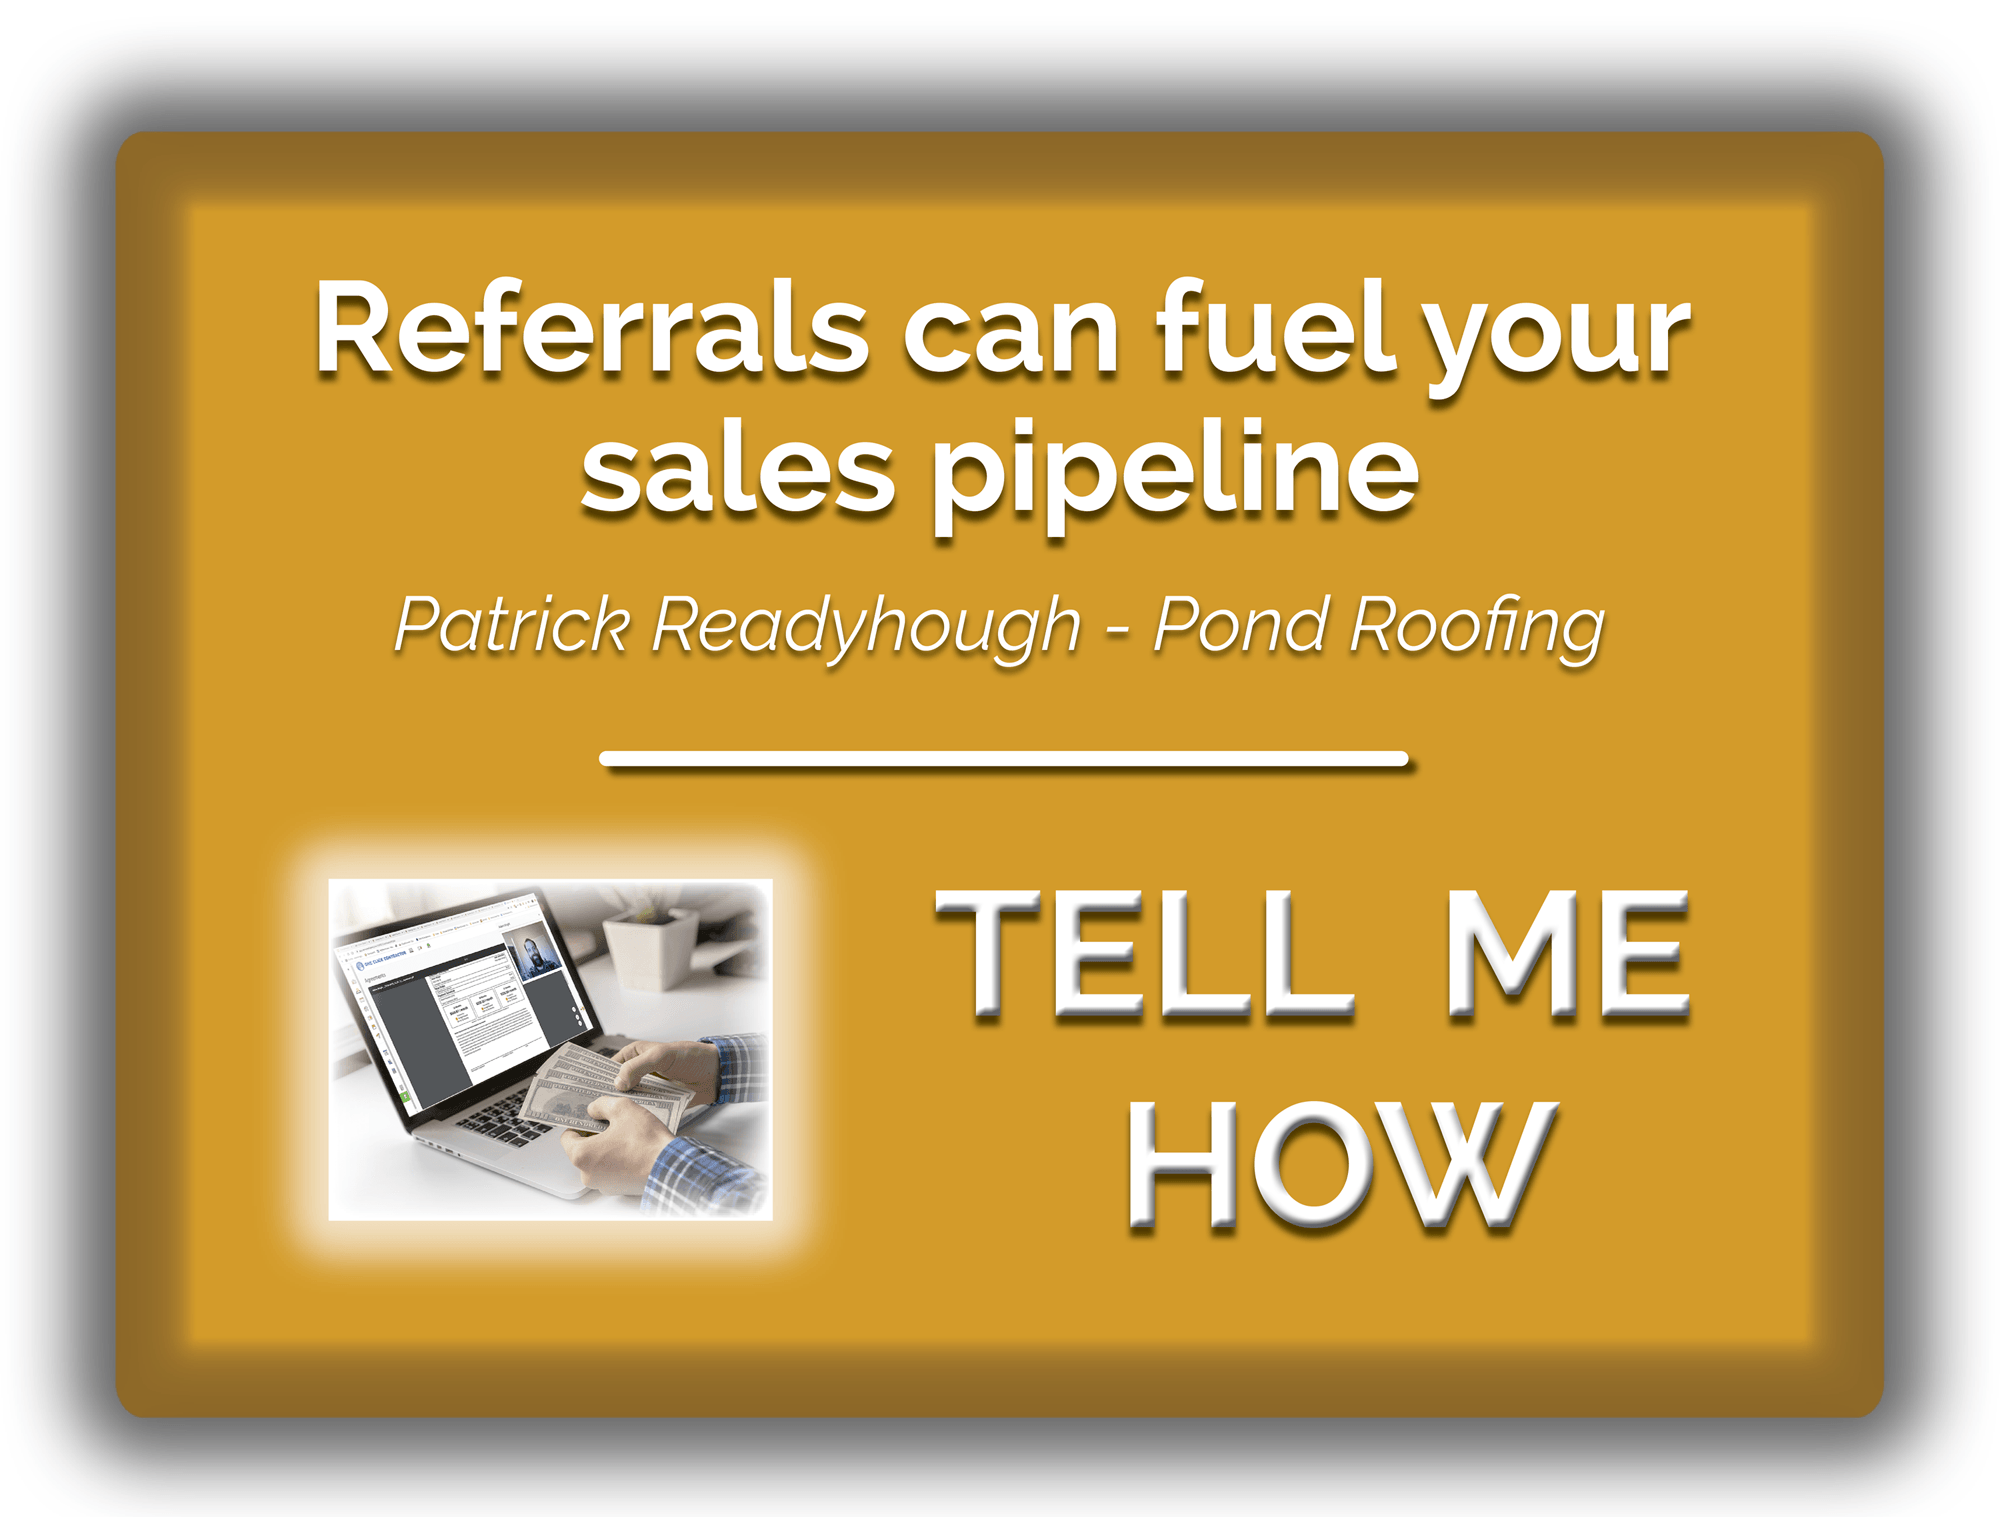 Referrals-Can-Fuel-Patrick-Readyhough-Button